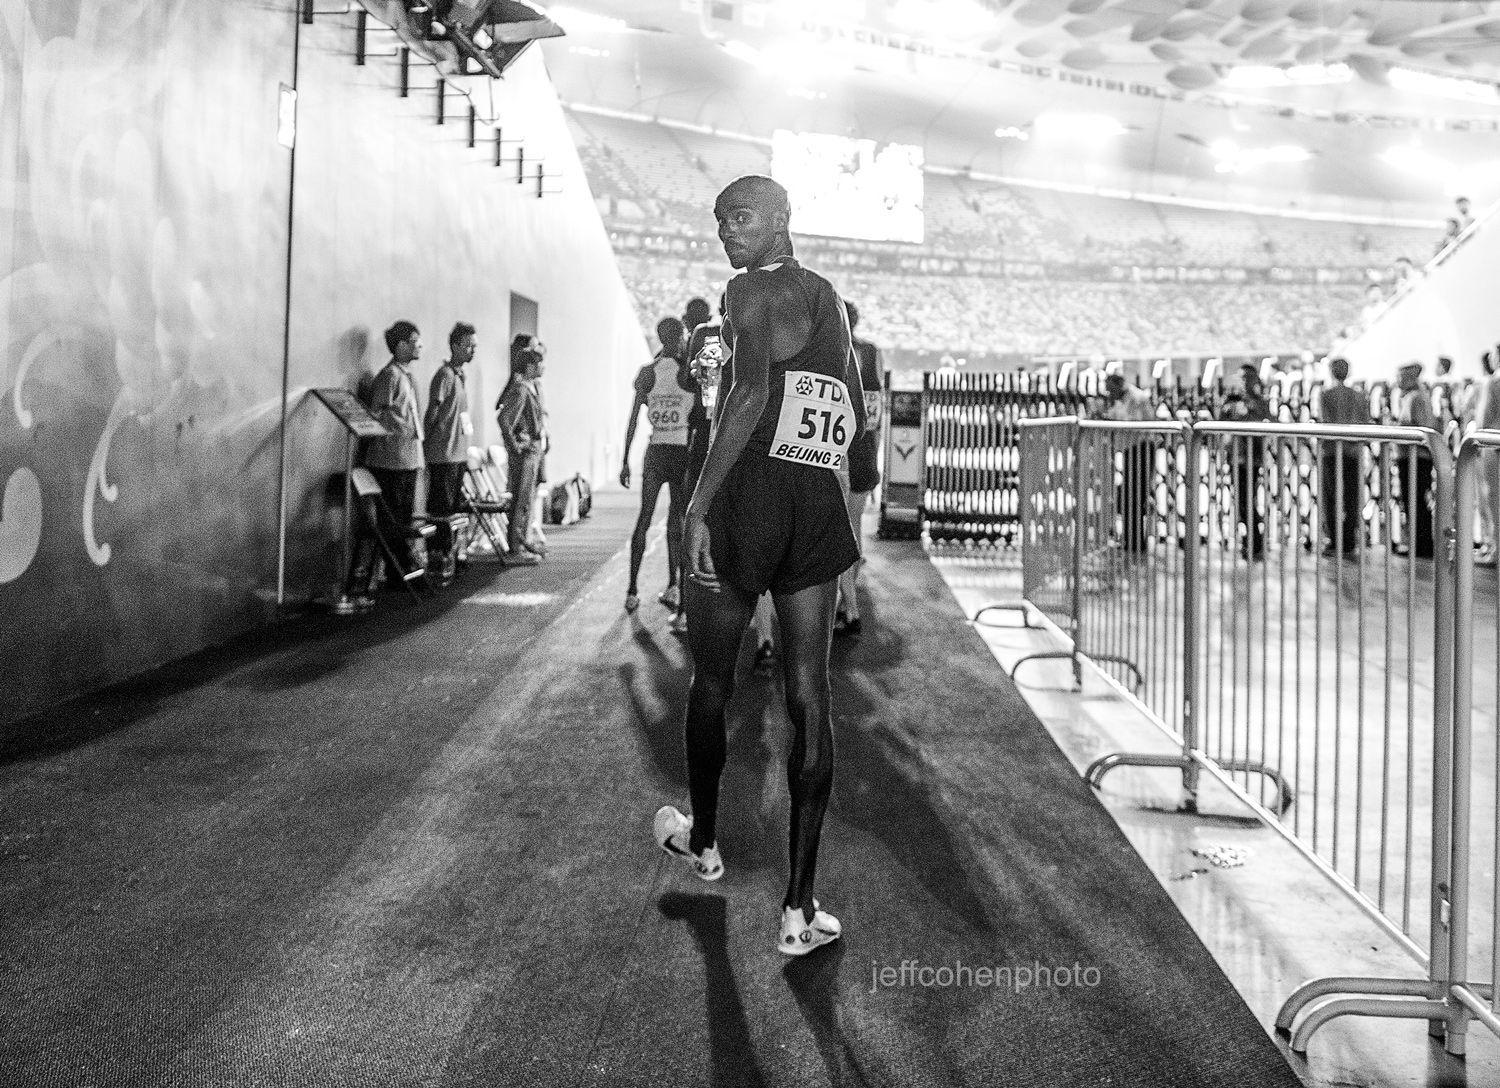 1beijing2015_night_8_mo_looks_back_jeff_cohen_photo_30661_web.jpg